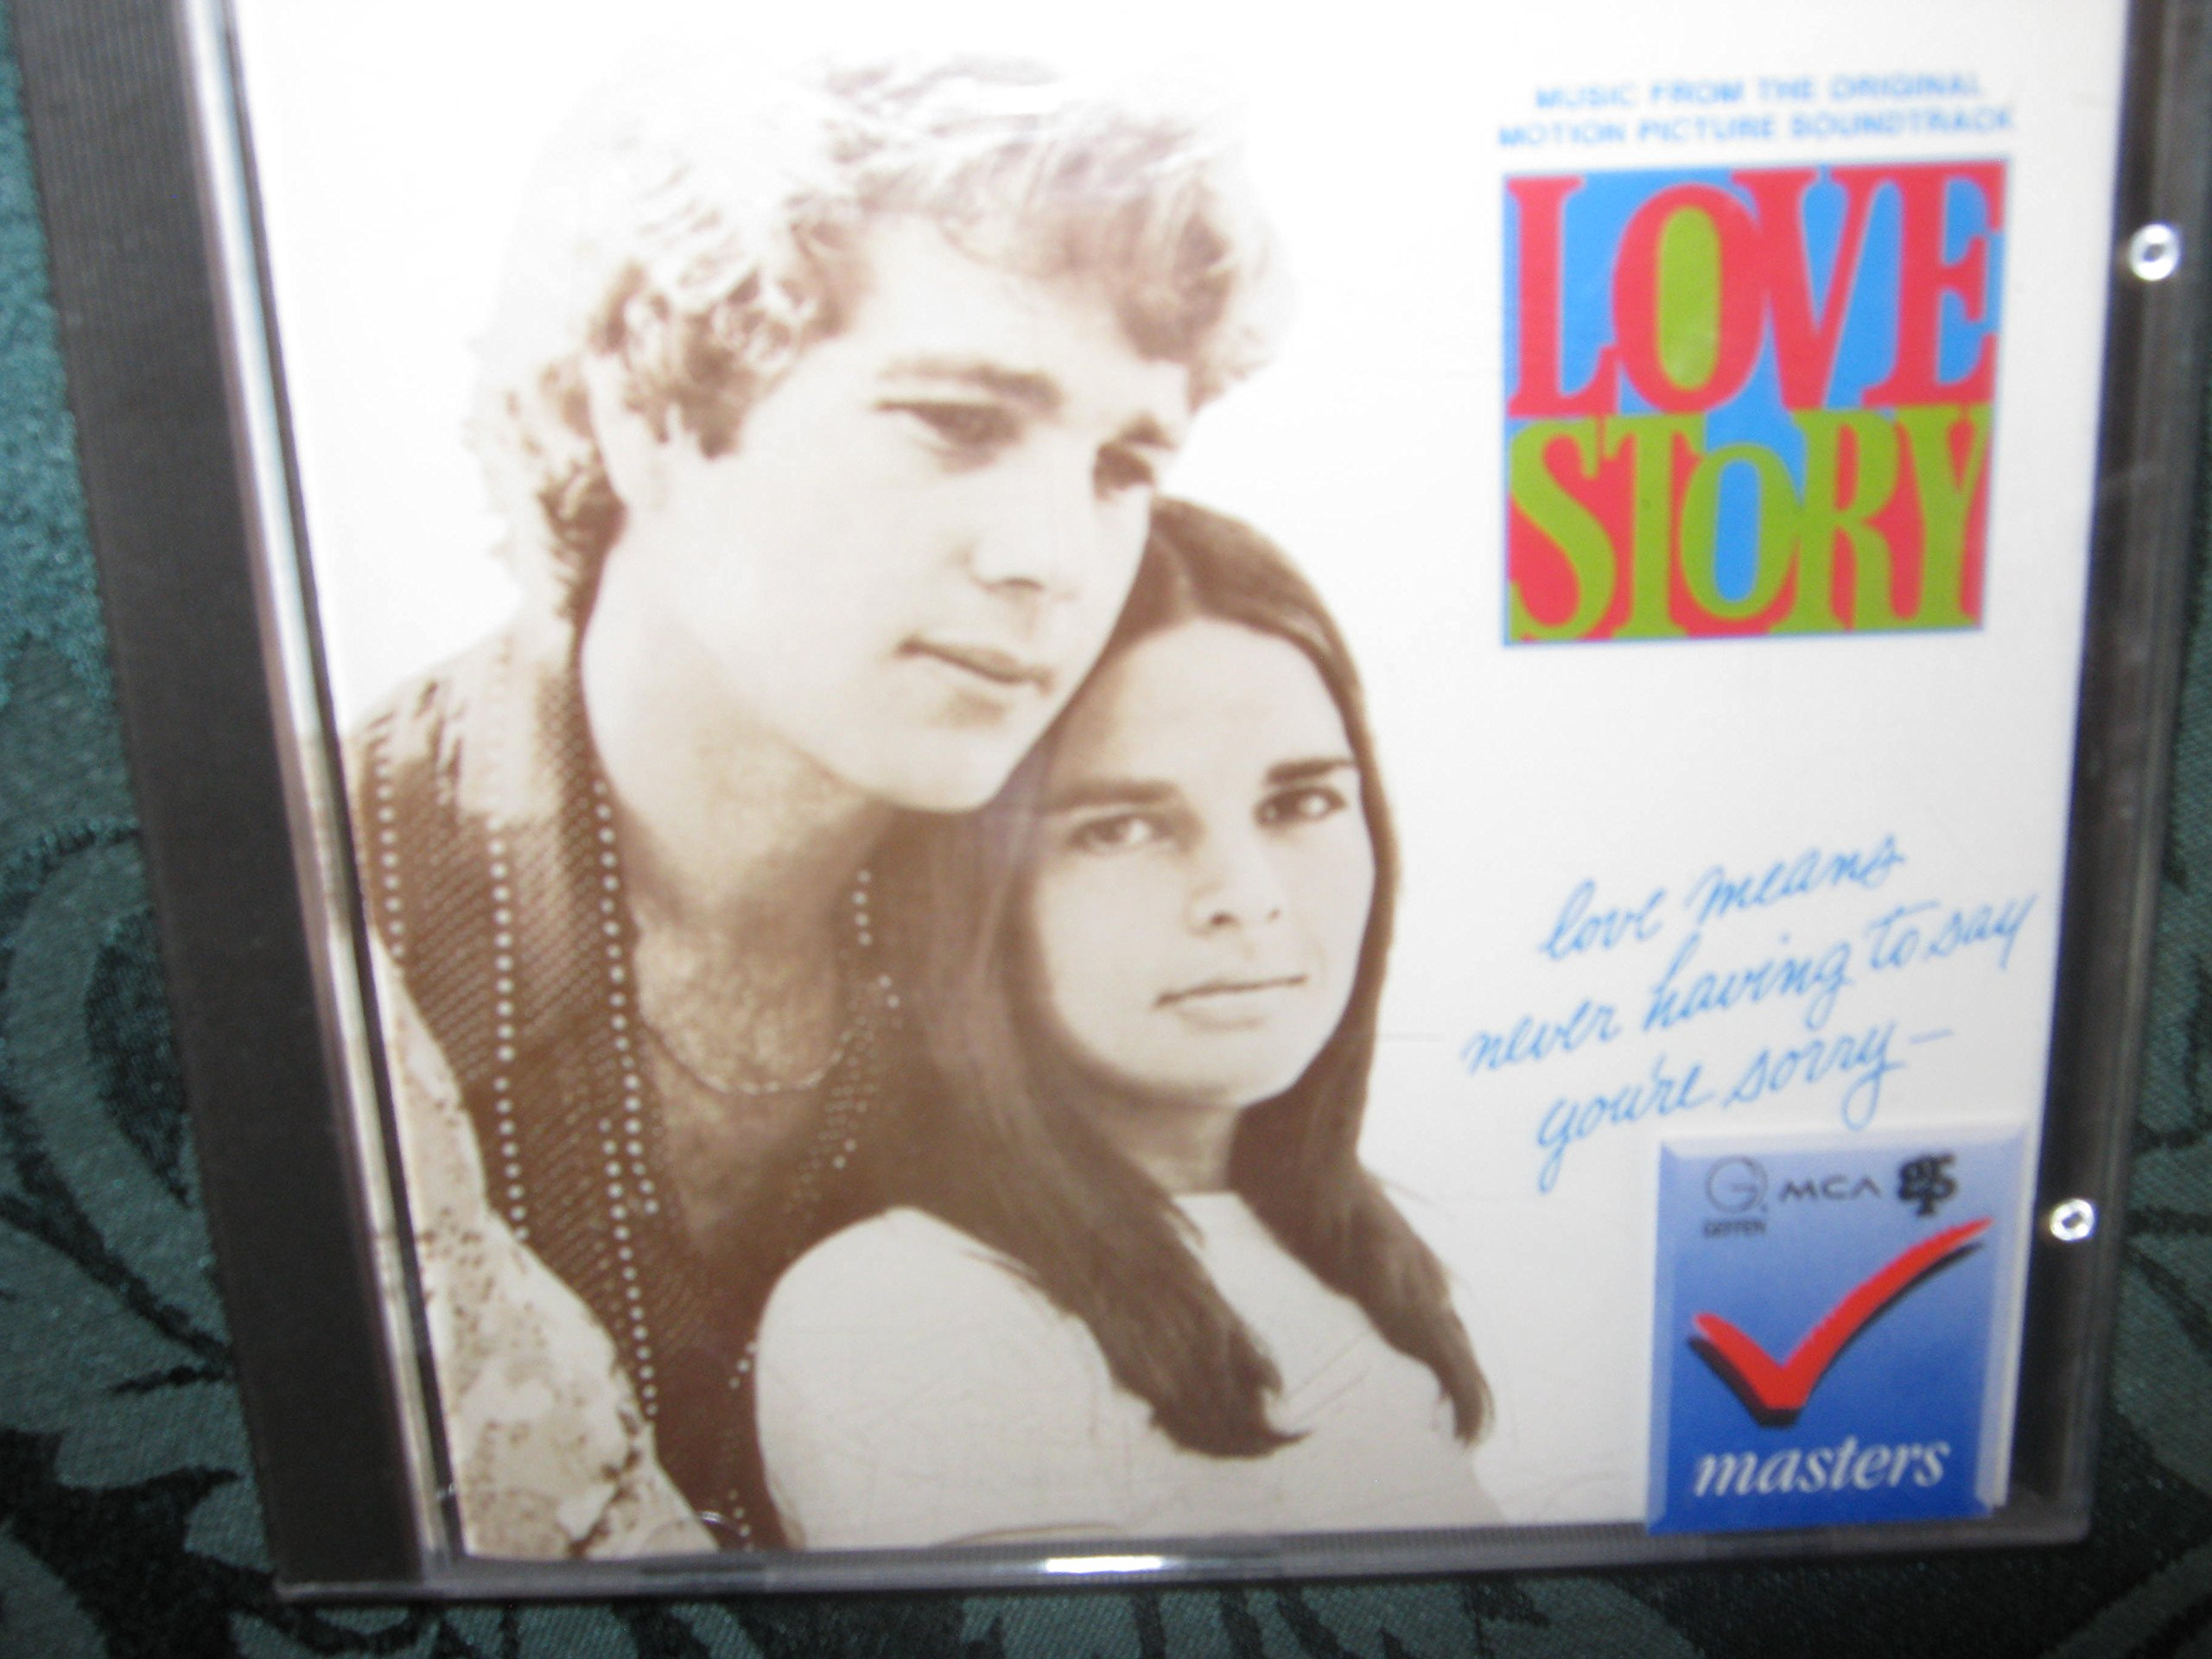 Love Story by Musicrama/Koch